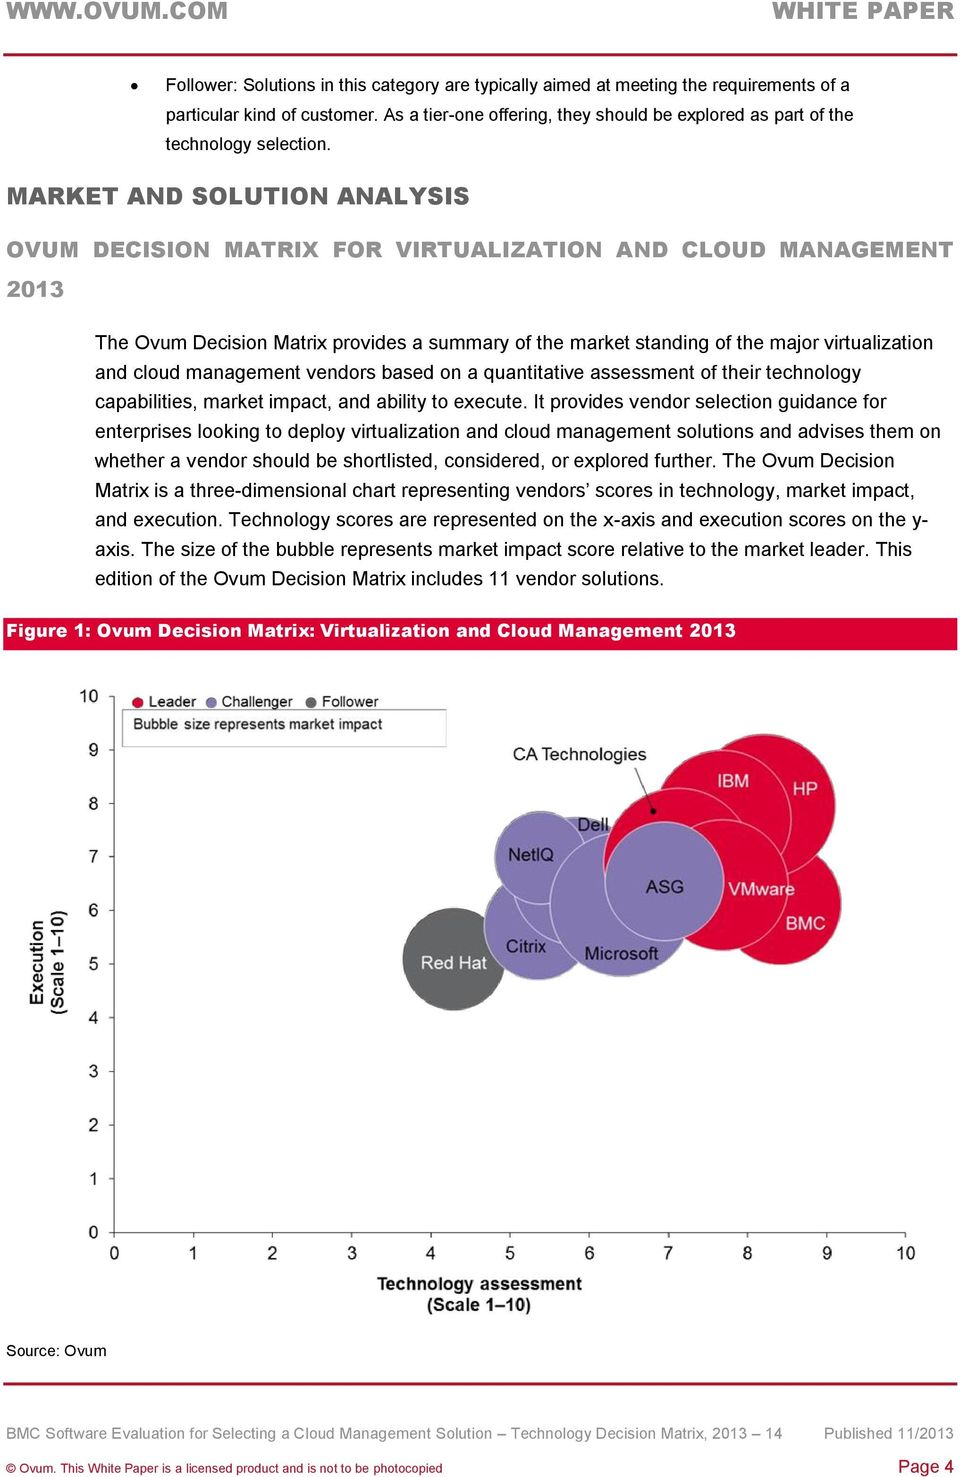 MARKET AND SOLUTION ANALYSIS OVUM DECISION MATRIX FOR VIRTUALIZATION AND CLOUD MANAGEMENT 2013 The Ovum Decision Matrix provides a summary of the market standing of the major virtualization and cloud